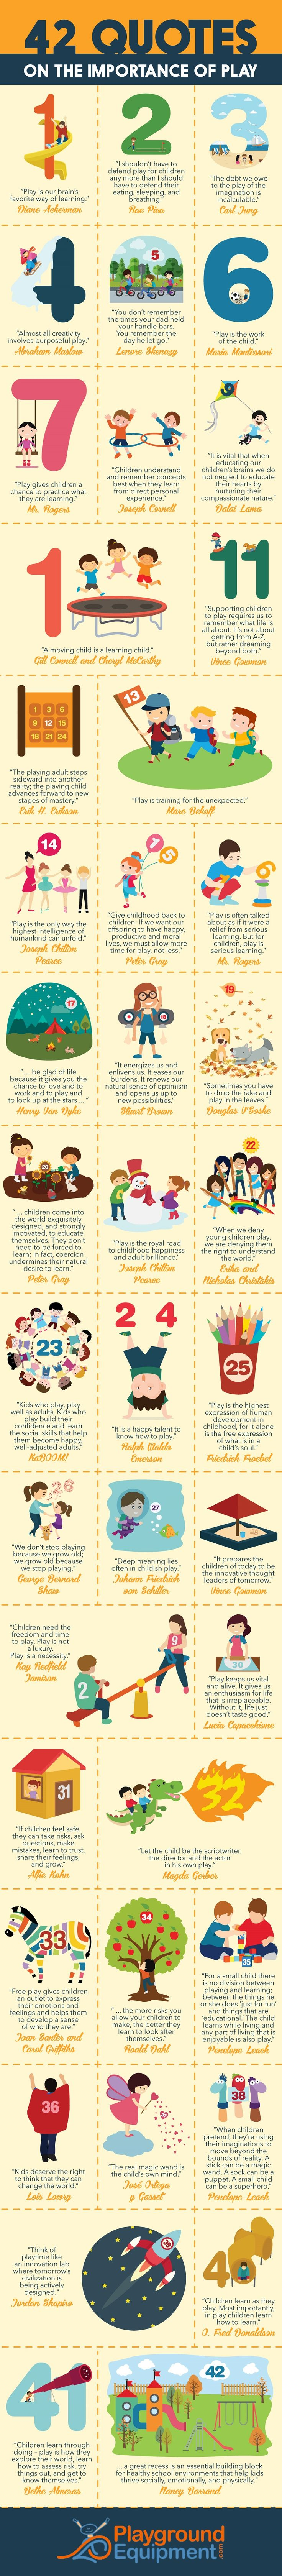 42 Quotes on the Importance of Play Infographic - http://elearninginfographics.com/importance-of-play-infographic/